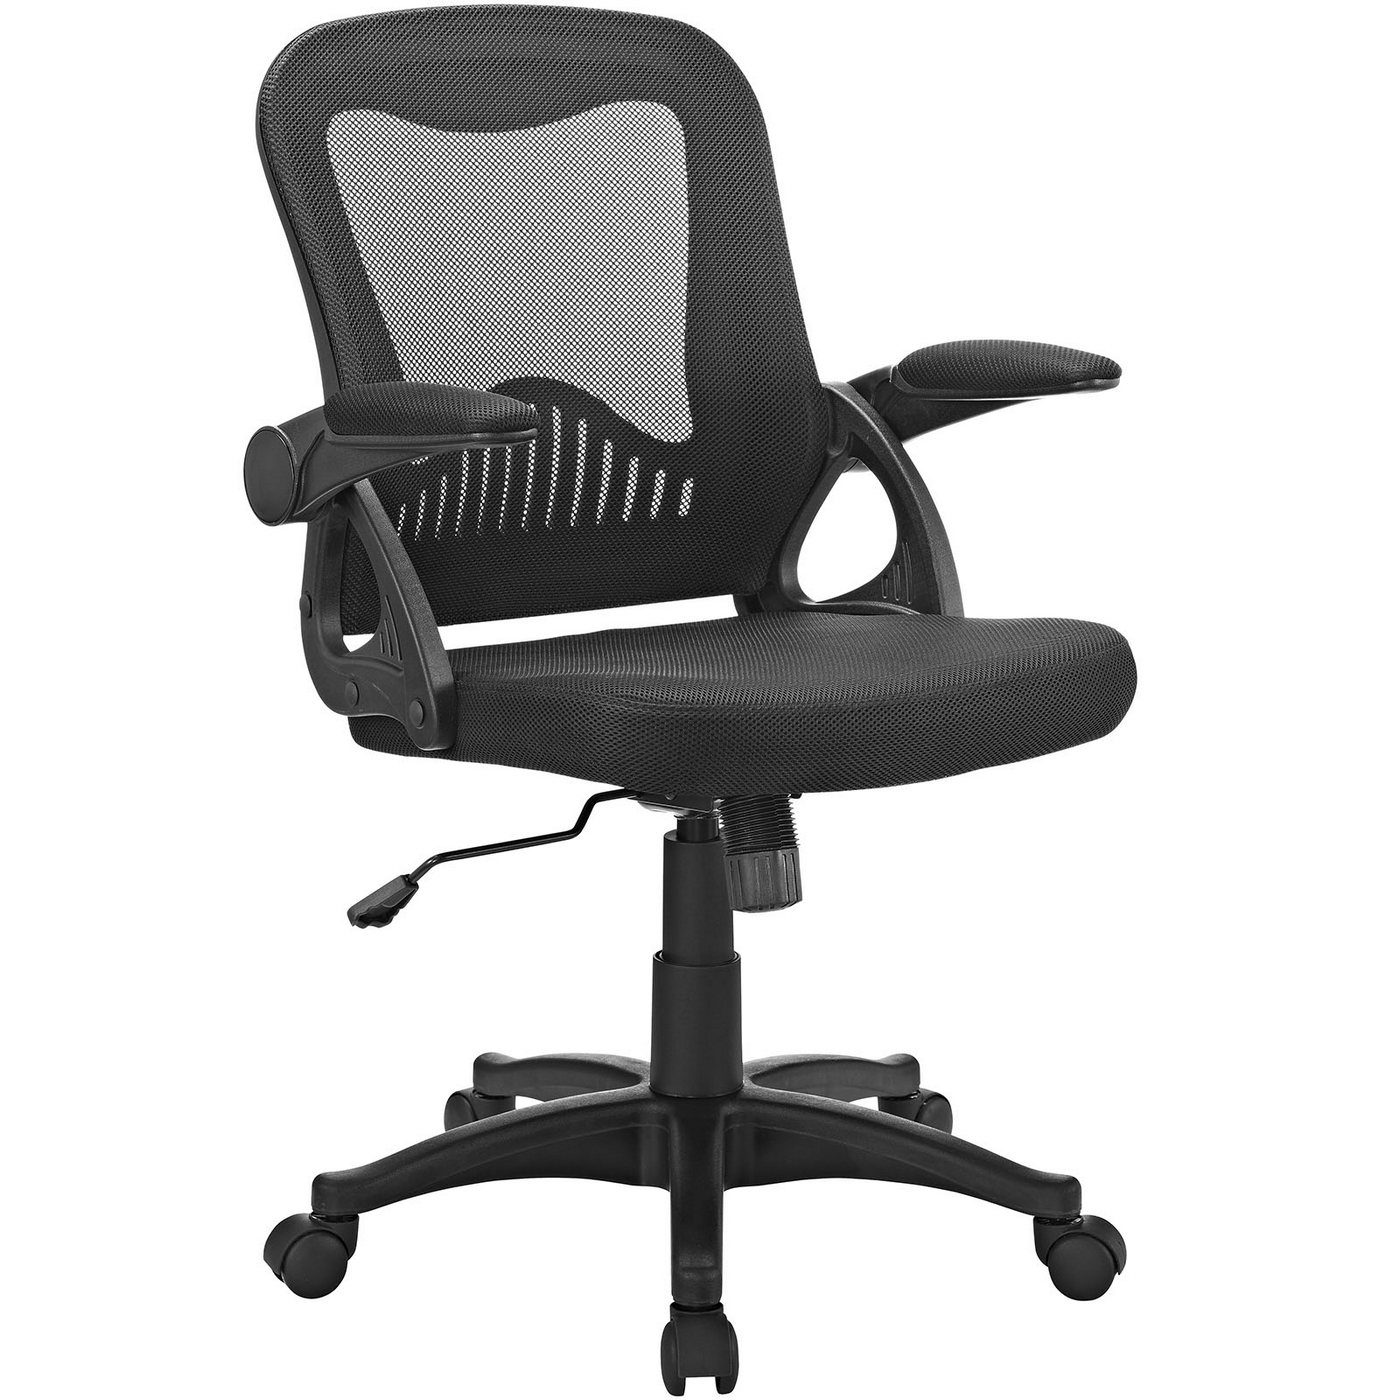 Ergonomic Office Chairs Advance Modern Mesh Back Ergonomic Office Chair W Tilt